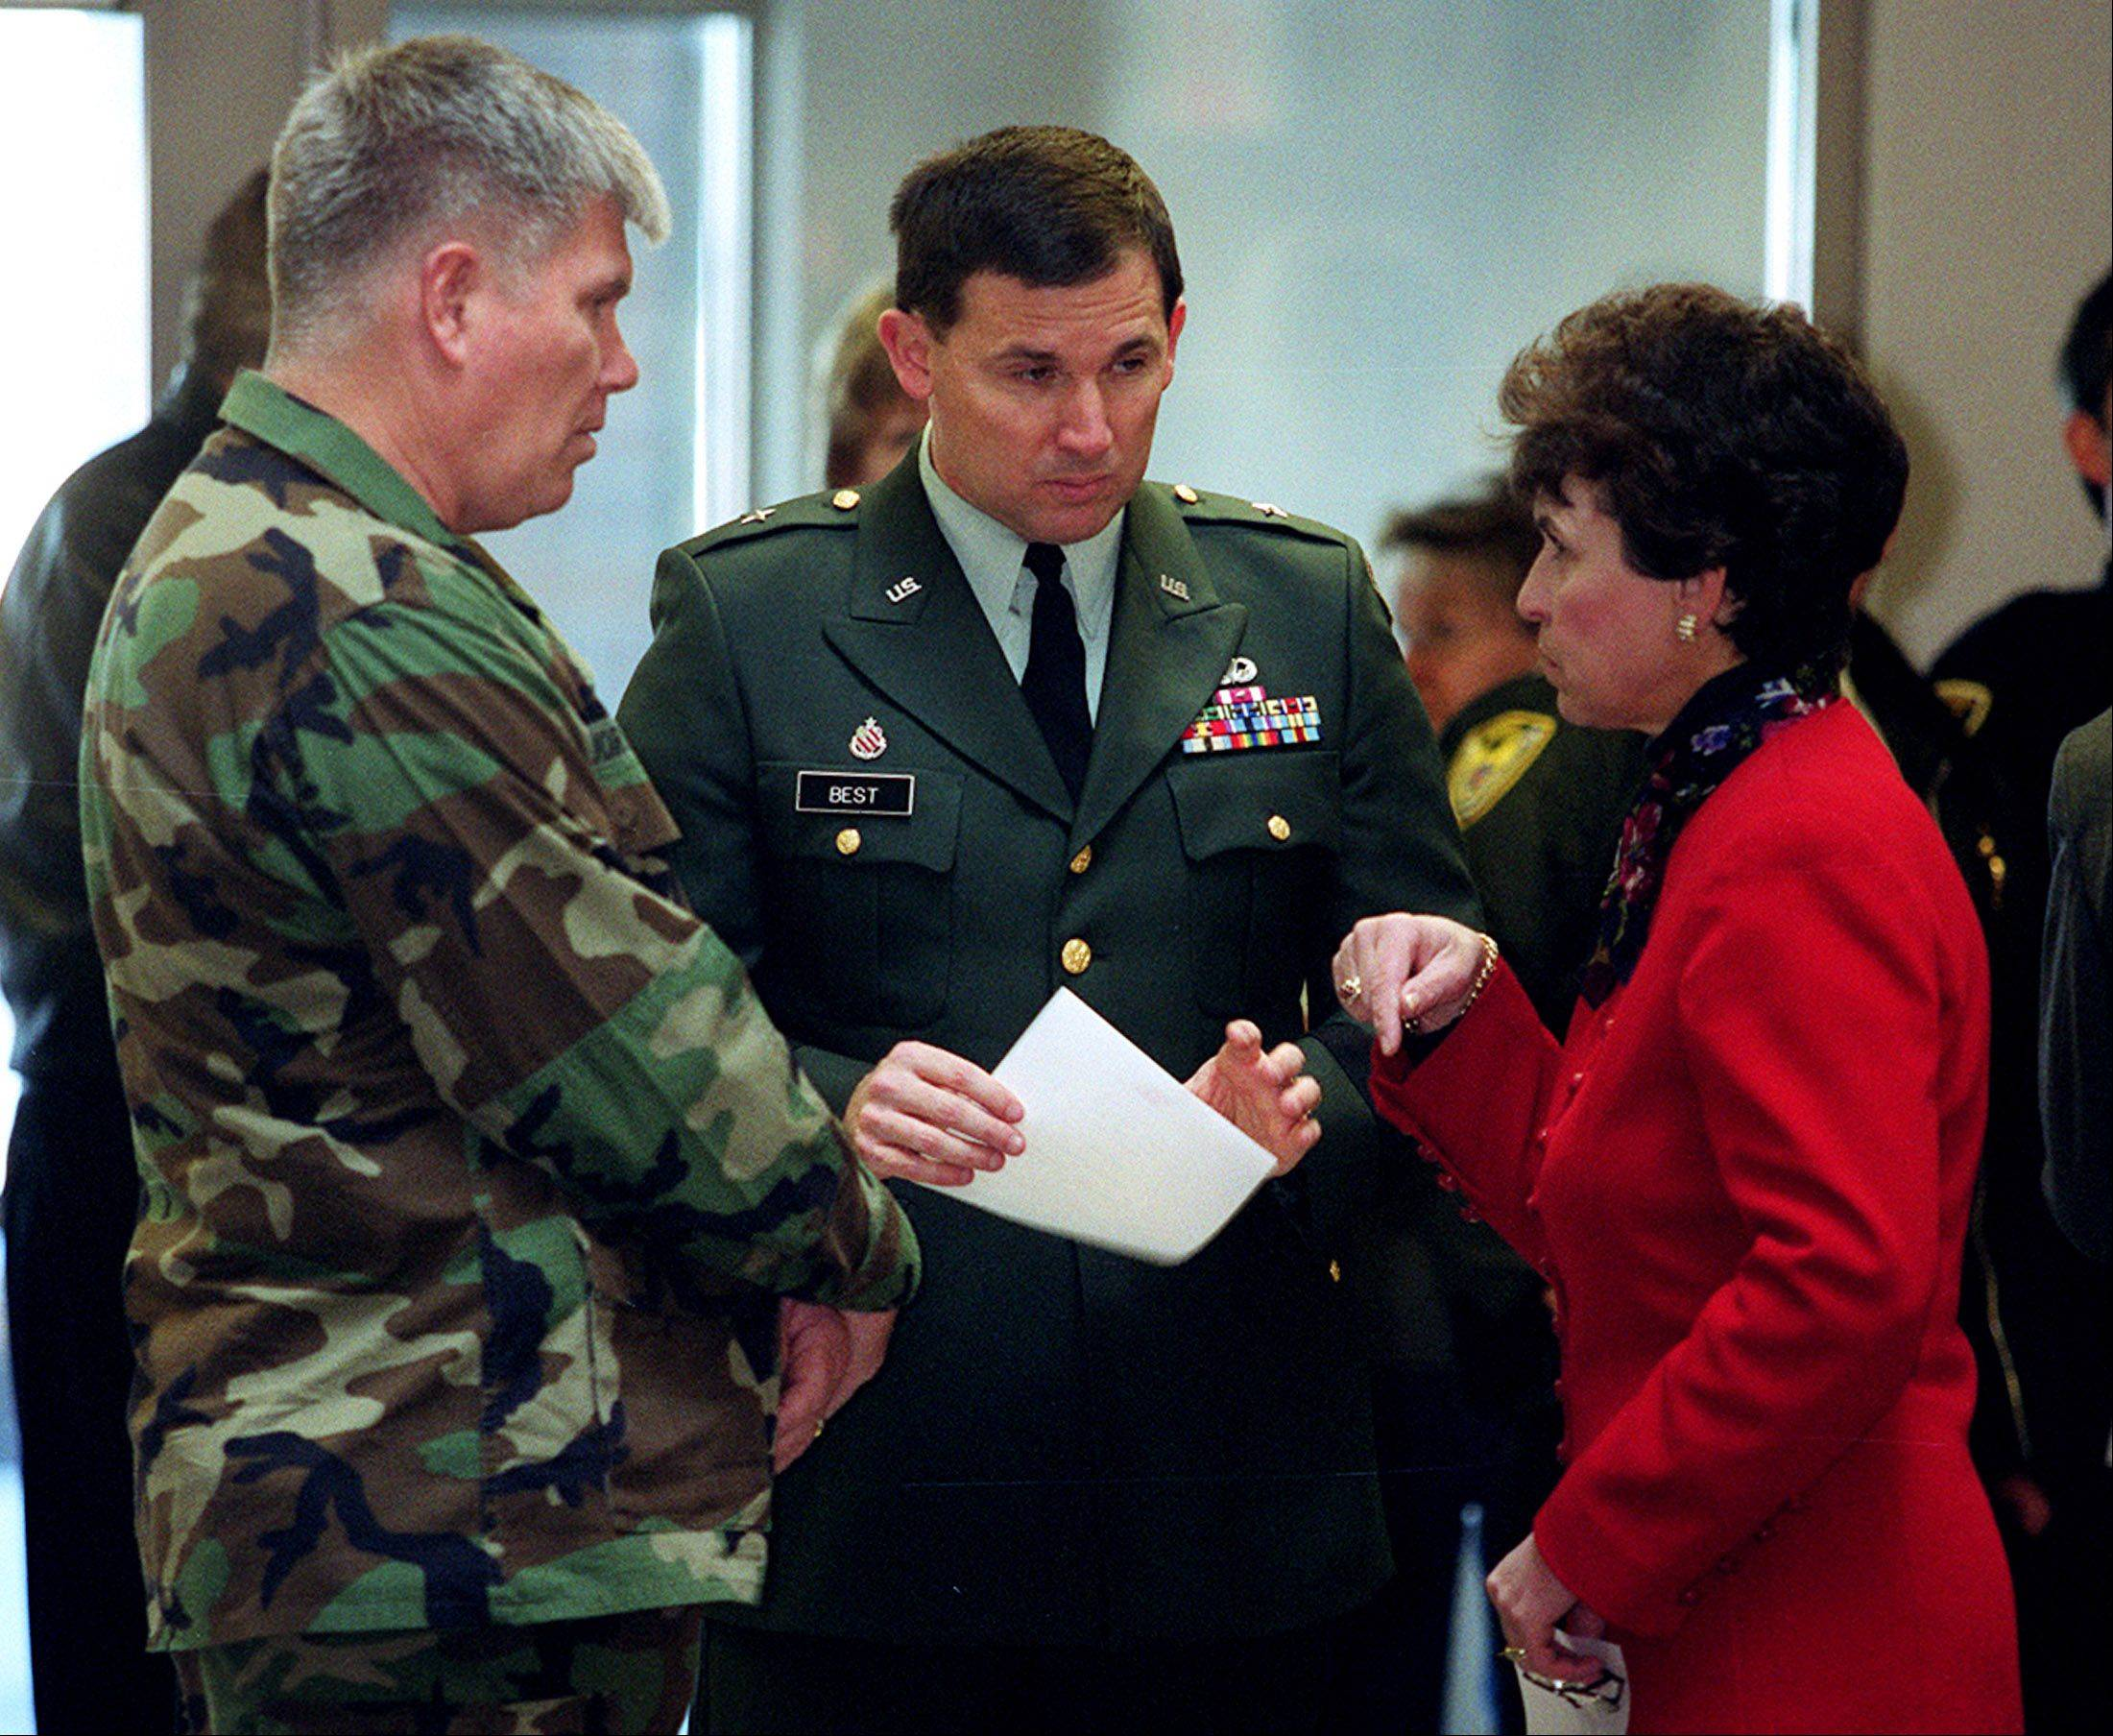 Col. Charles Jorgenson, left, and Brig. Gen. Steve Best talk to Arlene Mulder in the lobby of the new Army Reserve Center in Arlington Heights during the dedication ceremony of the $16 million center on Nov. 19, 2002.